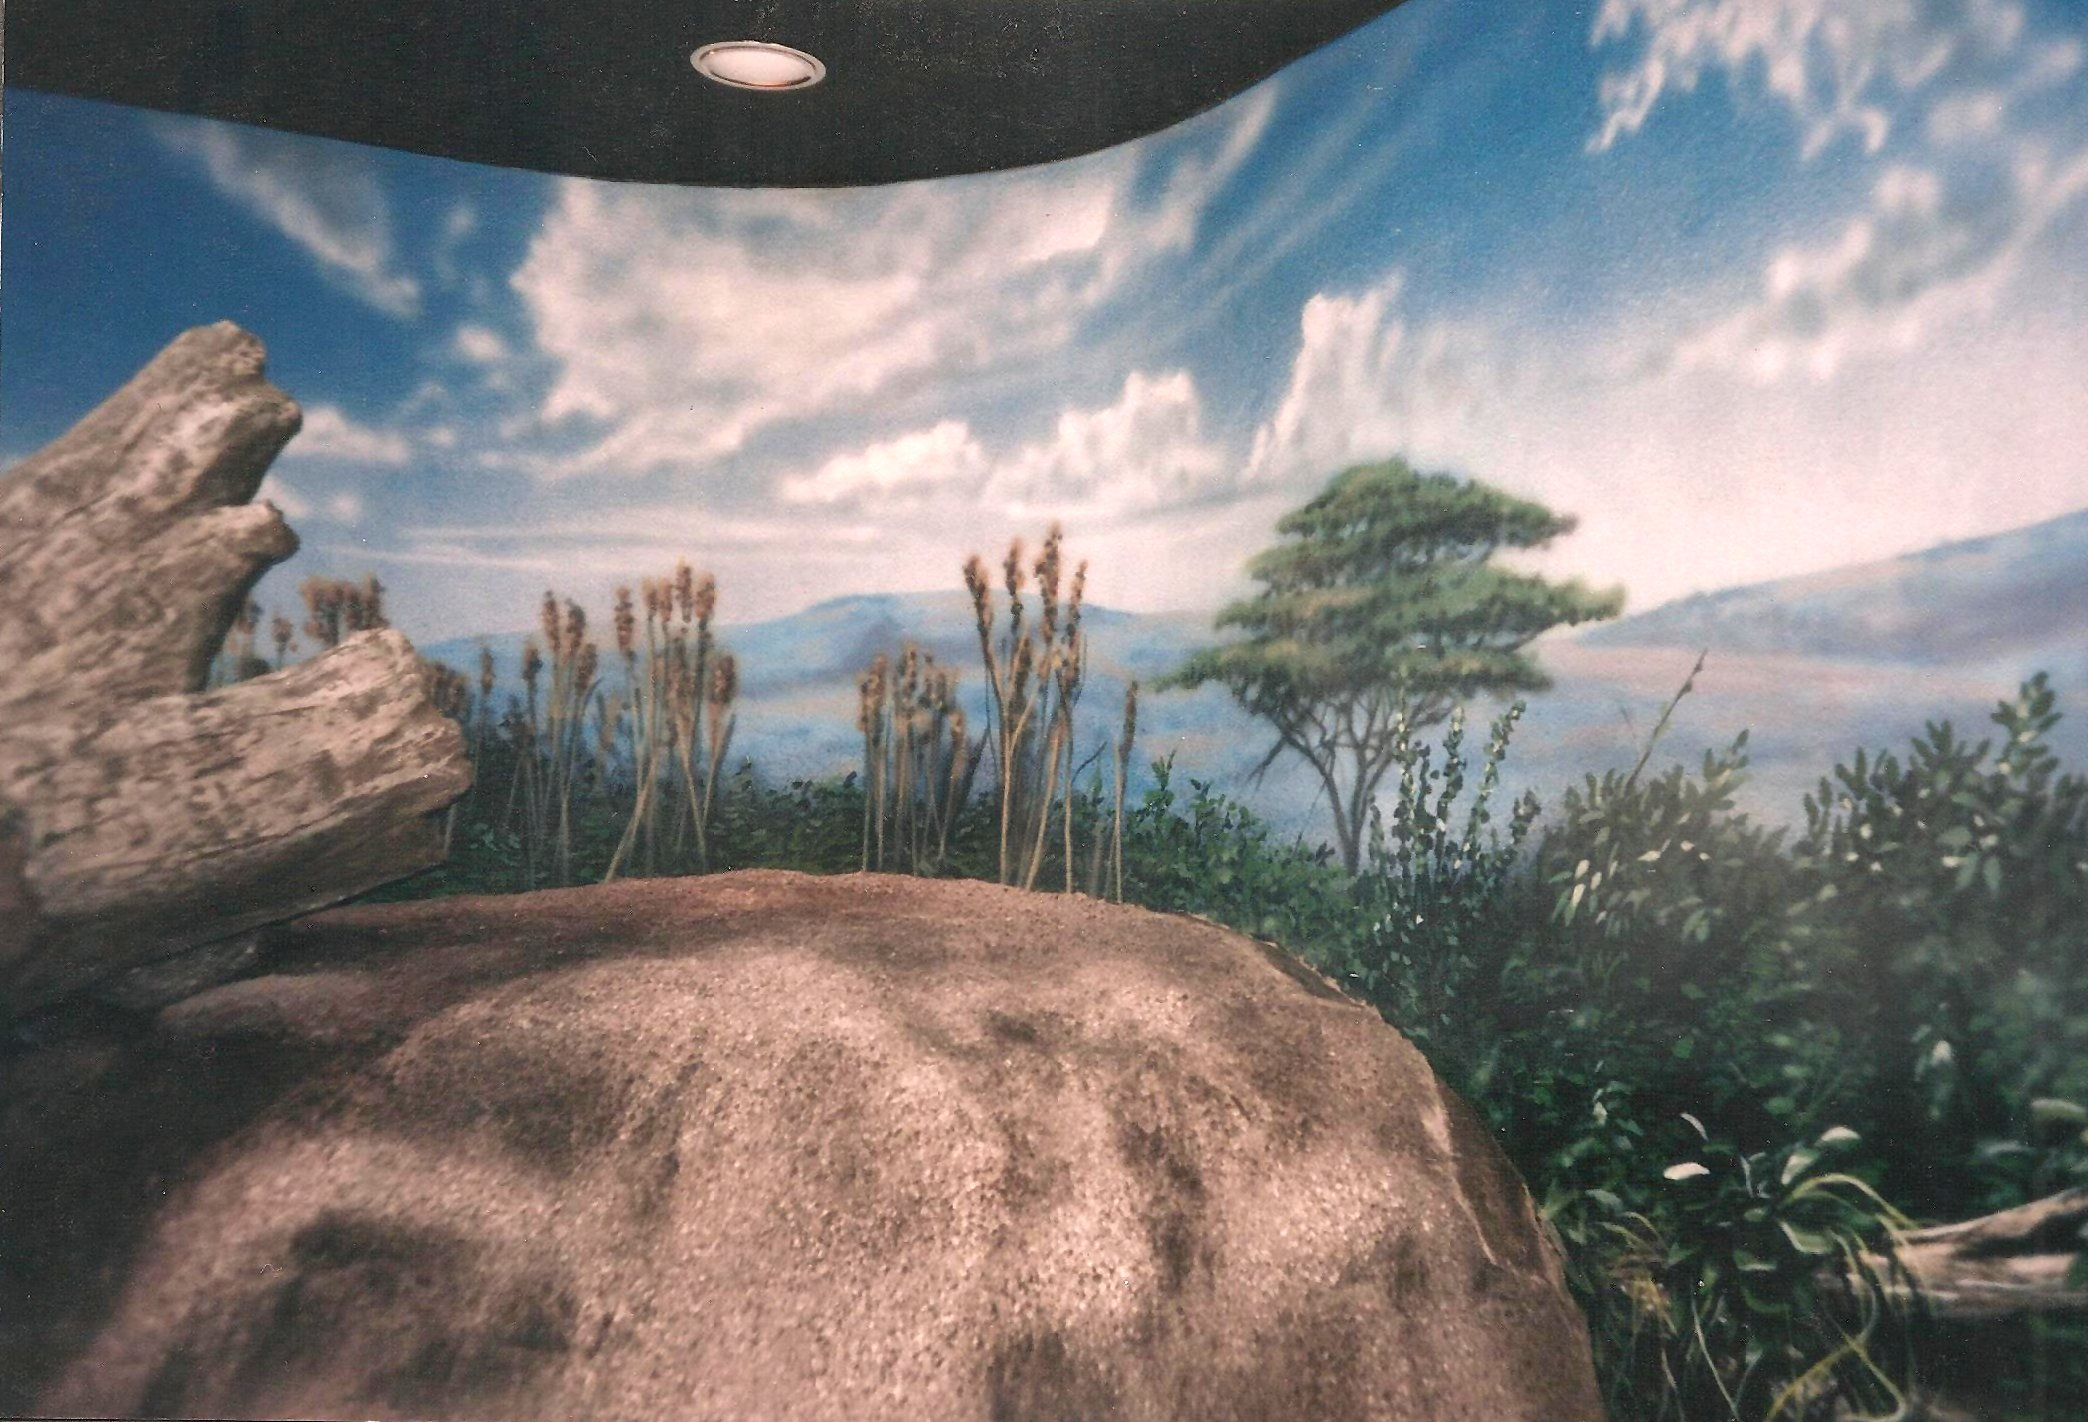 Leopard-exhibit-murals-Erie-Zoo-by-Paul-Barker-Googleplex